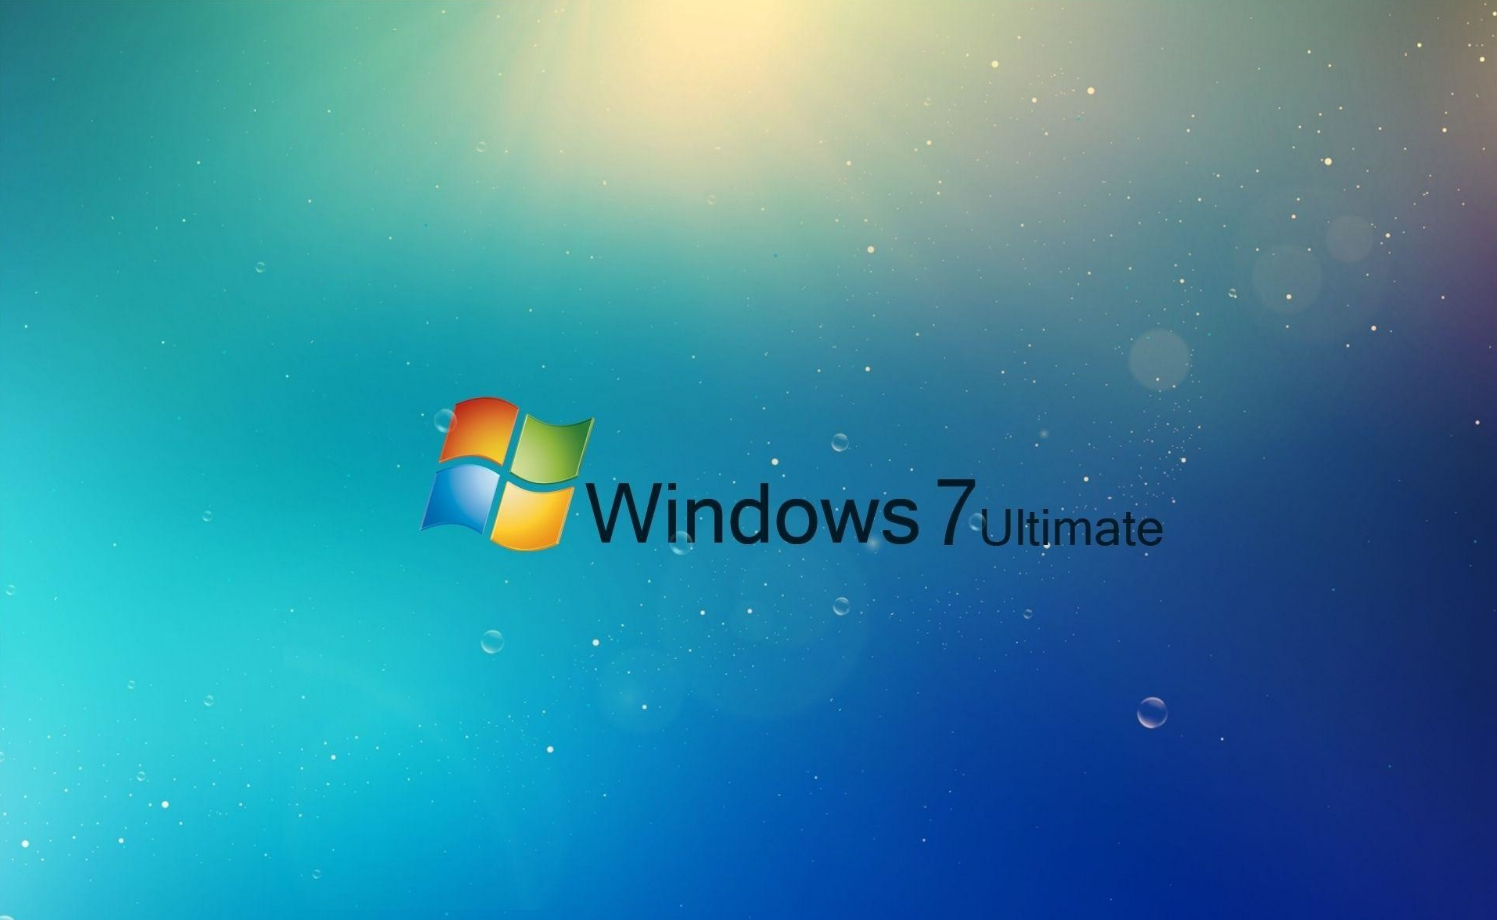 Download robusto do Windows 7 Ultimate